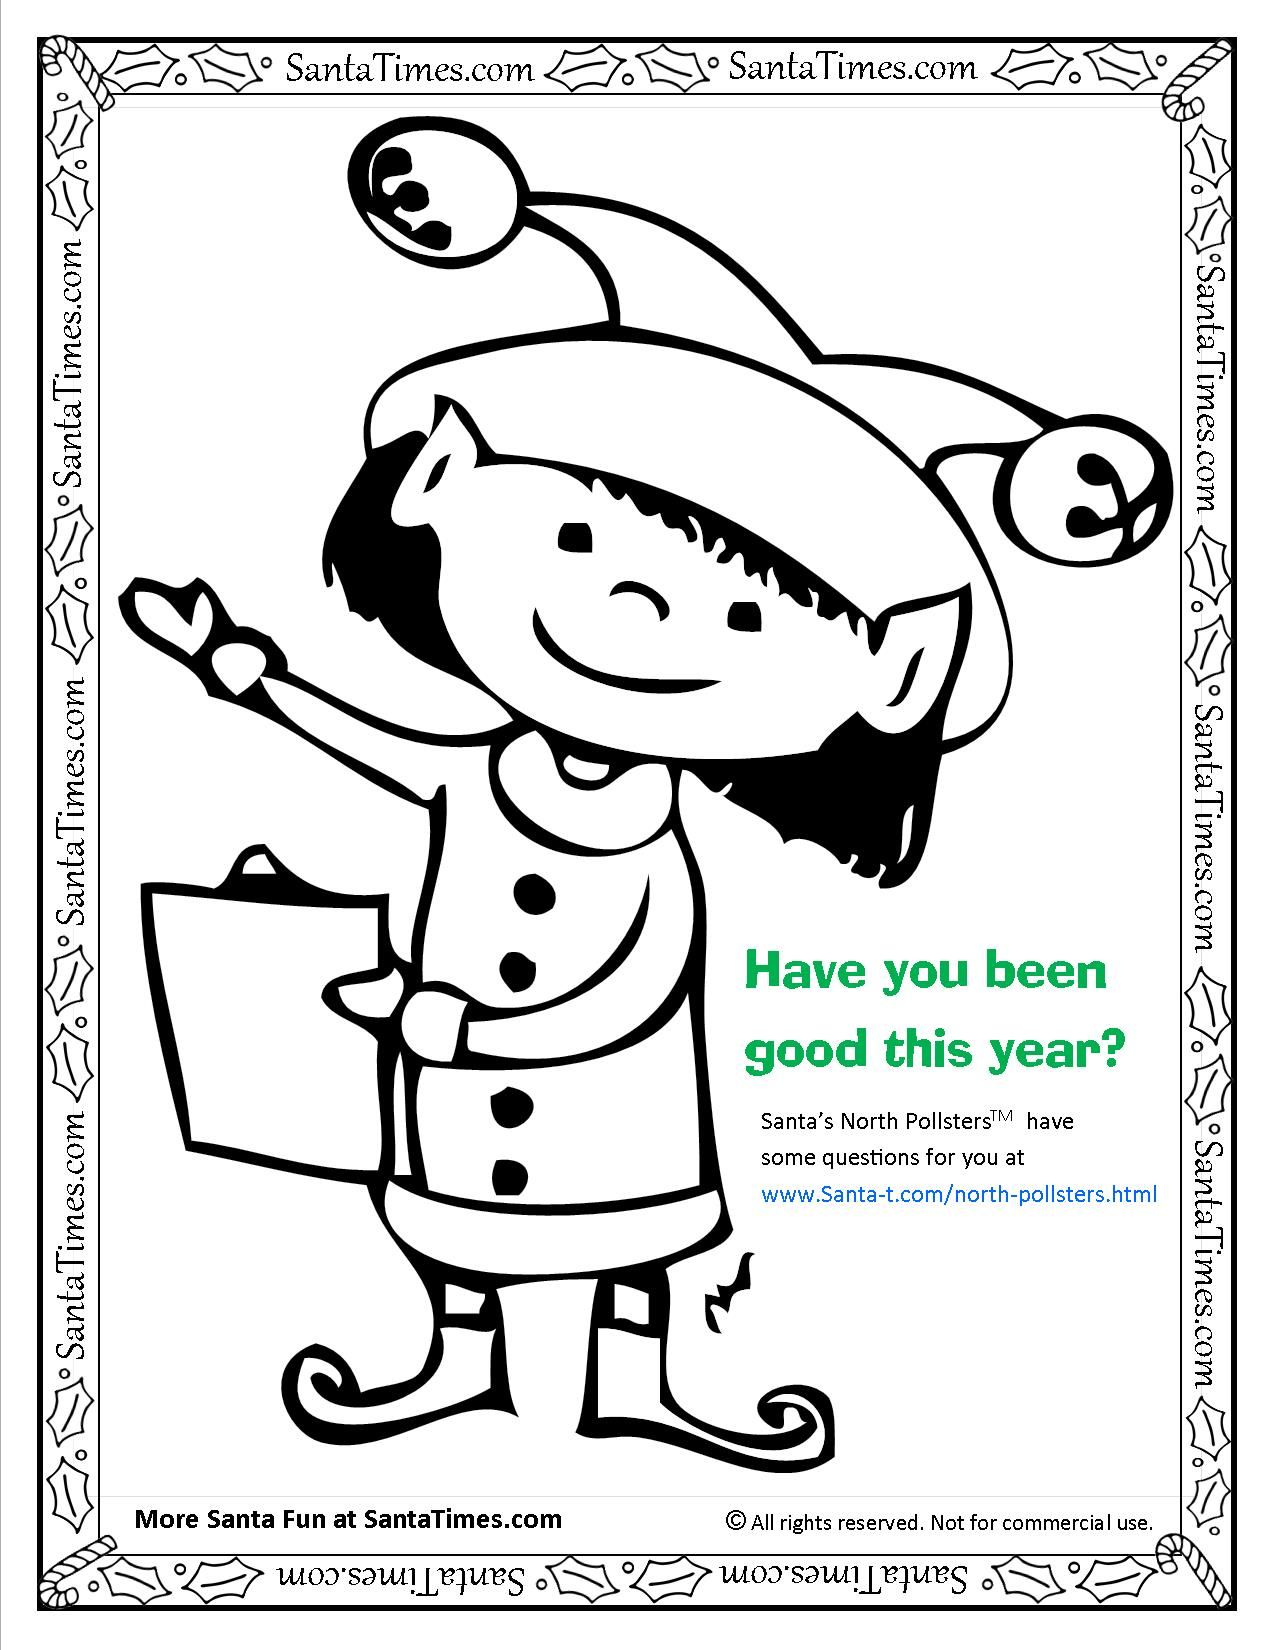 Have You Been Good This Year More Coloring Pages At